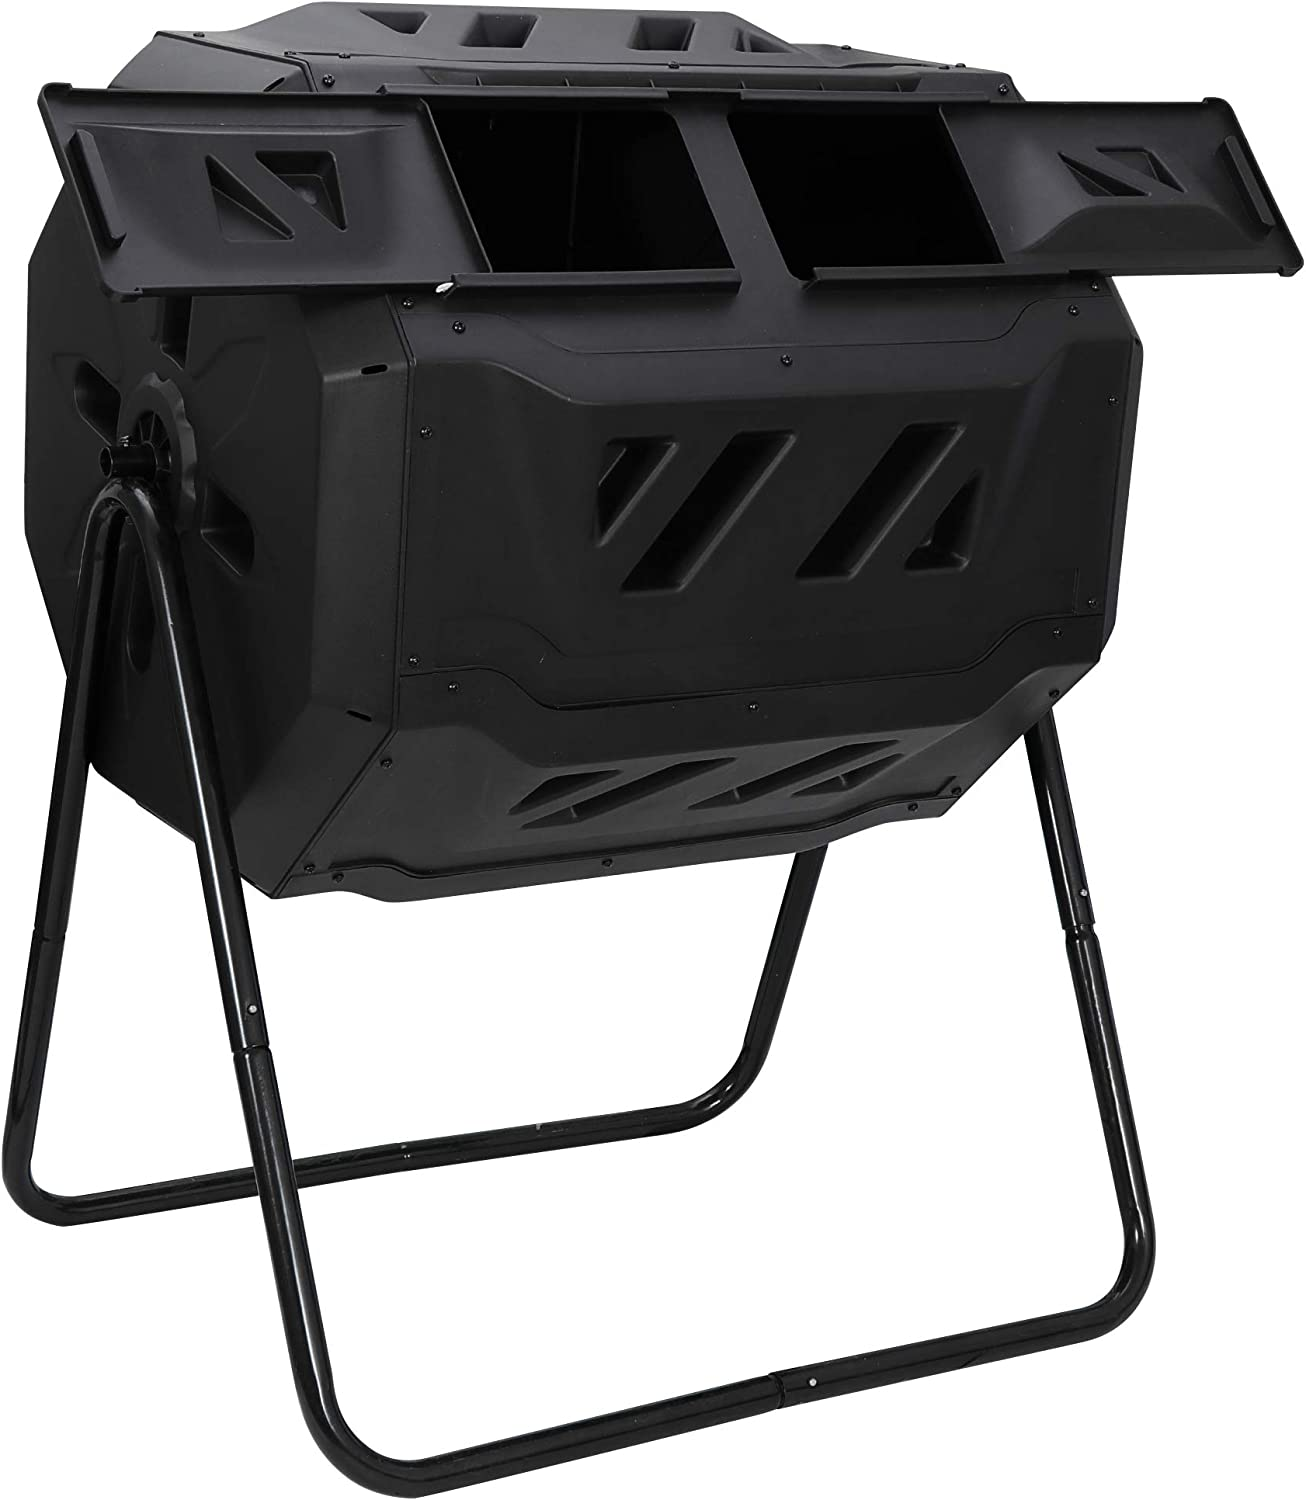 SUPER DEAL 43 Gallon Large Outdoor Compost Tumbler 2 Chambers Garden Composting Bin 360/° Rotation Black